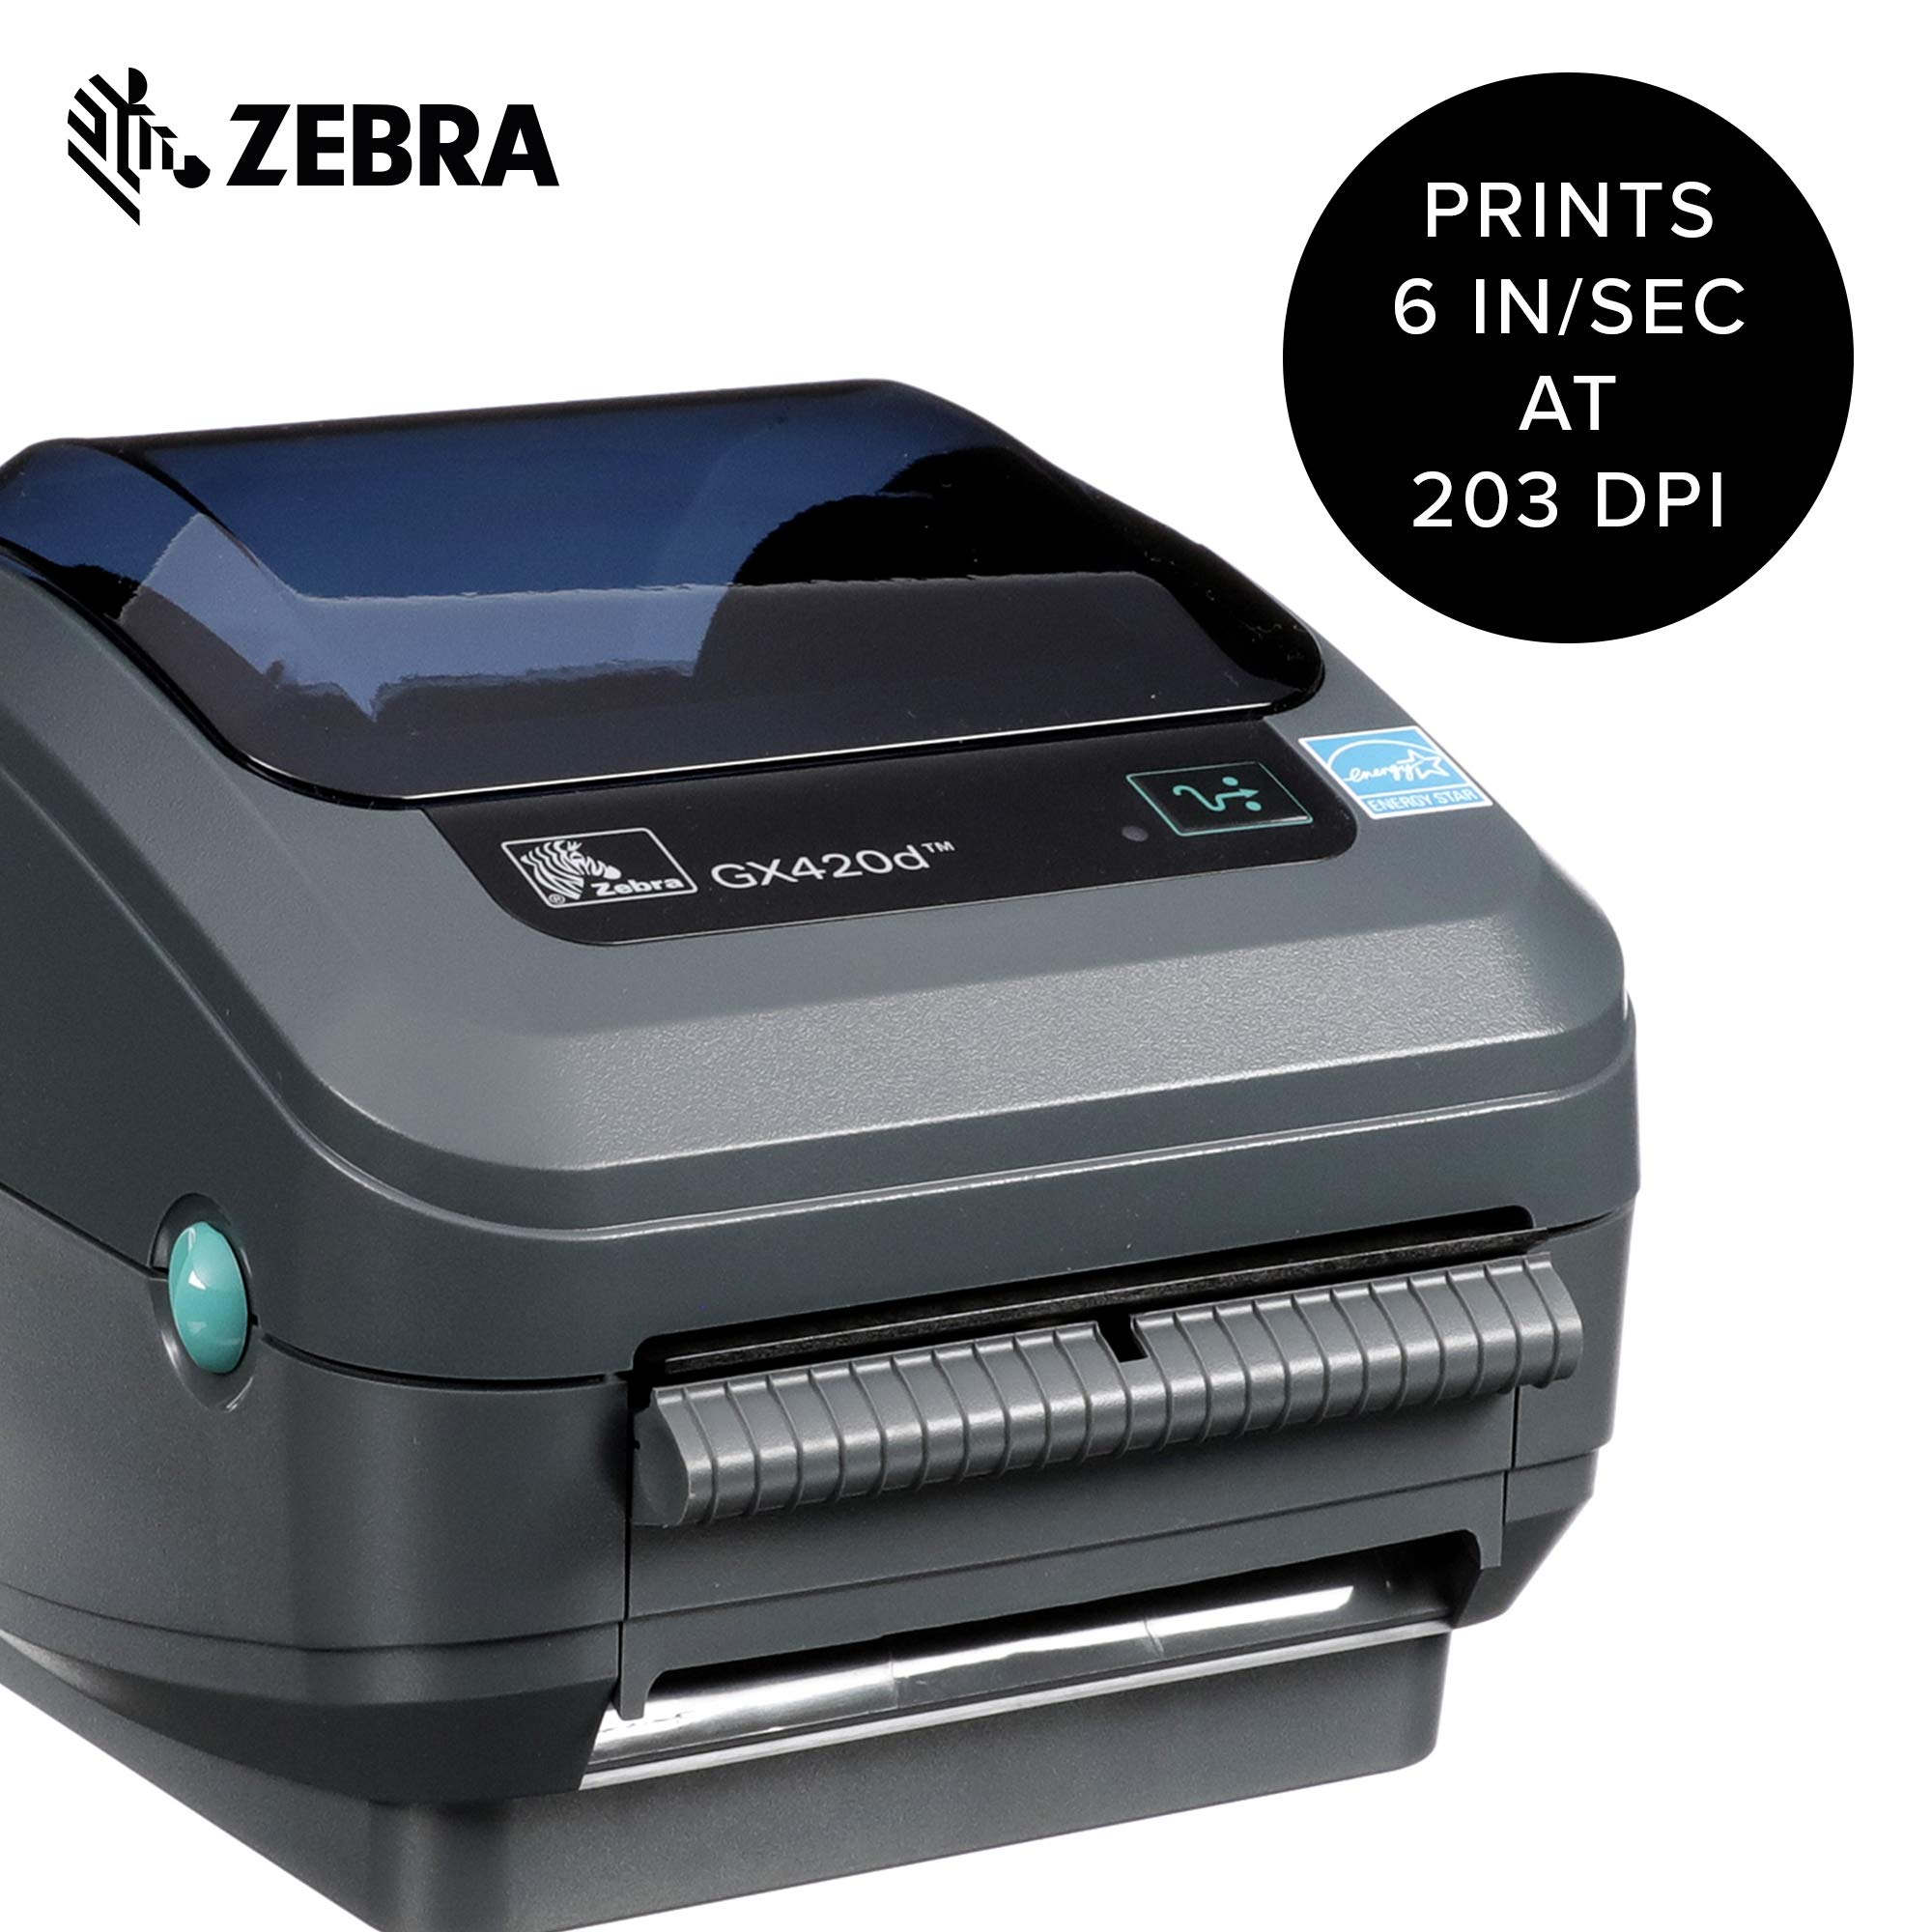 Zebra - GX420d Direct Thermal Desktop Printer for Labels, Receipts, Barcodes, Tags, and Wrist Bands - Print Width of 4 in - USB, Serial, and Parallel Port Connectivity (Includes Peeler) by ZebraNet (Image #2)